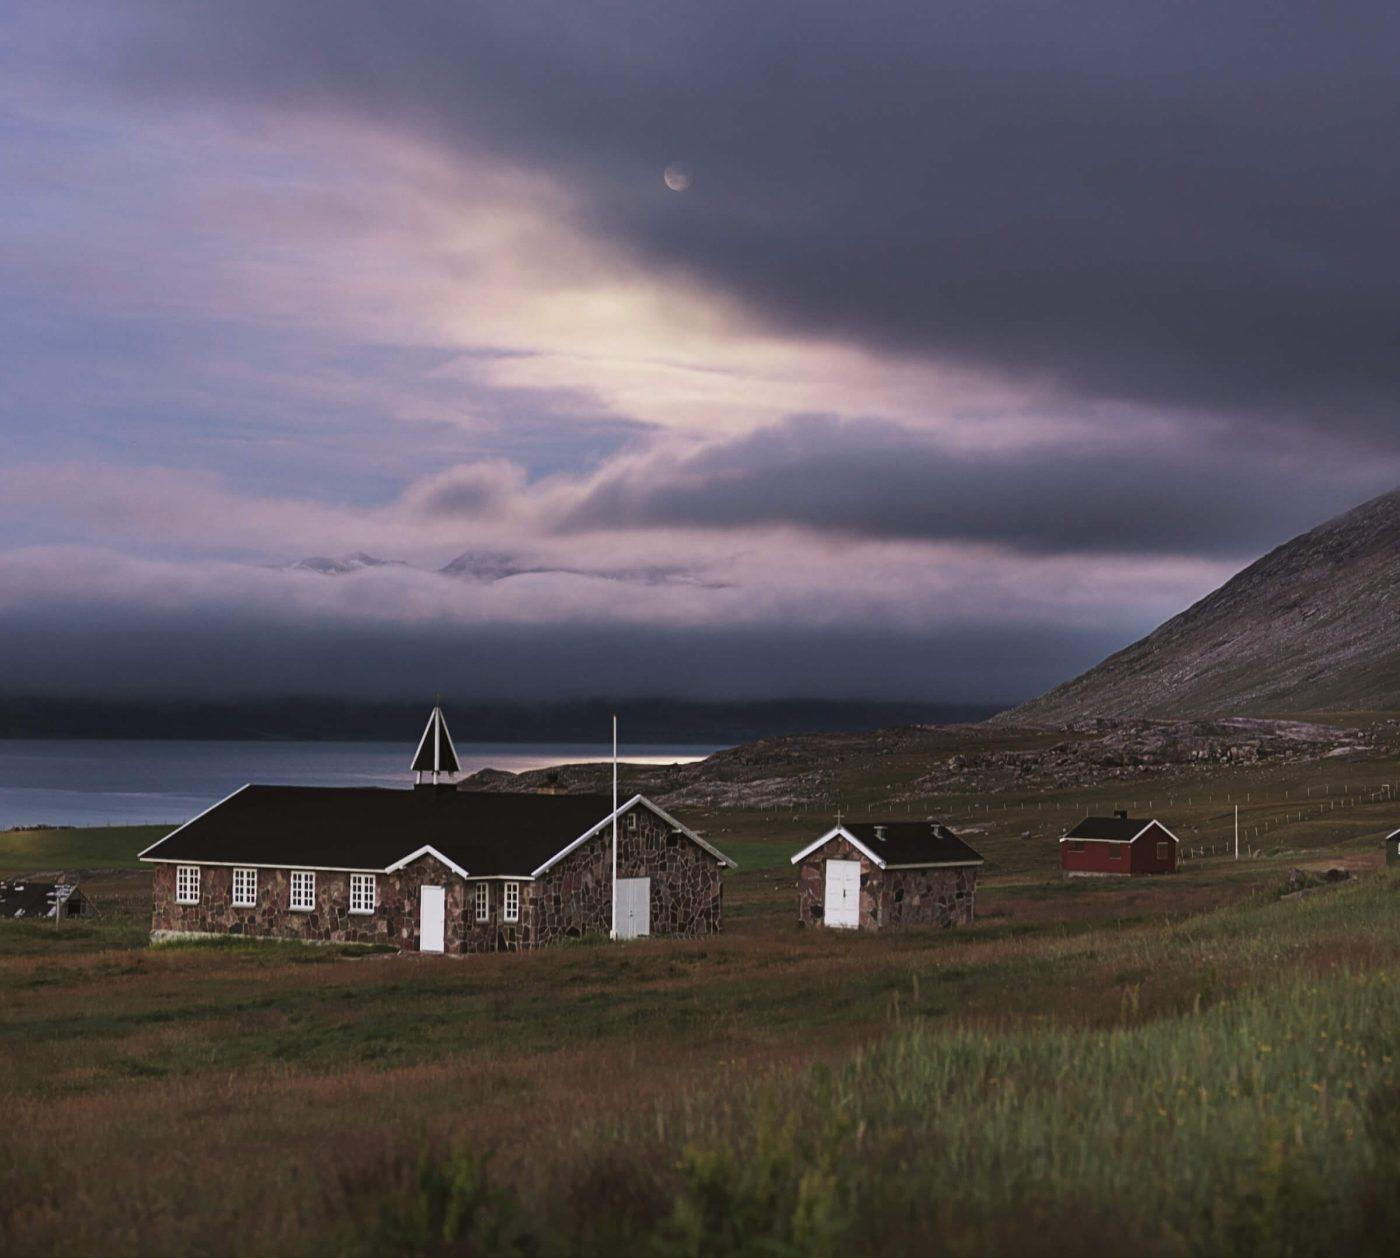 Dark clouds with a silver lining over the church in Igaliku in South Greenland. Photo by David Trood